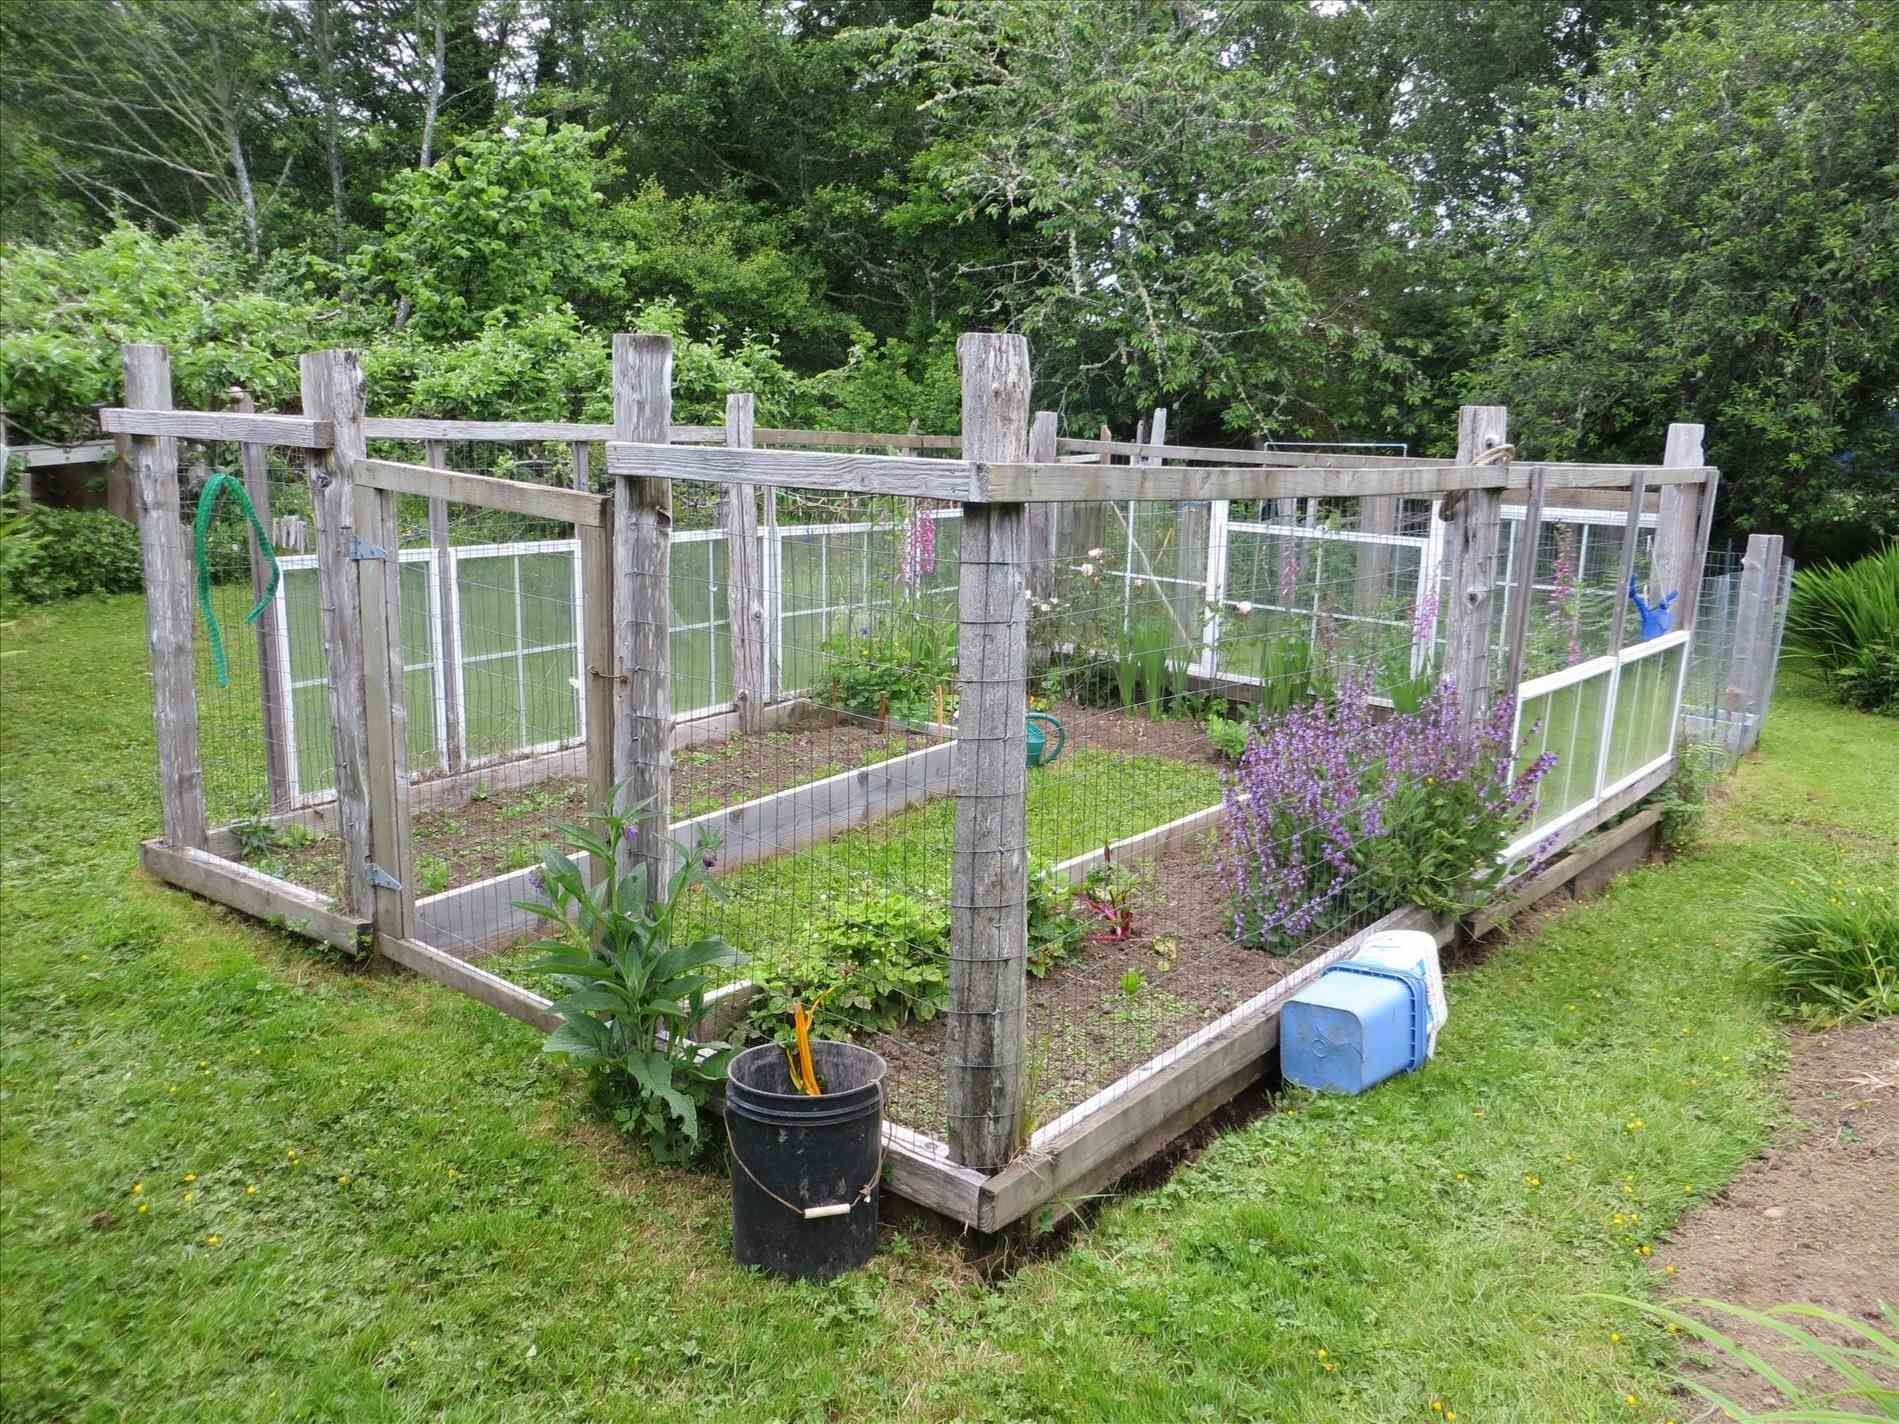 garden-fence-around-chicken-coop-to-keep-dogs-out-welded-wire-with ...